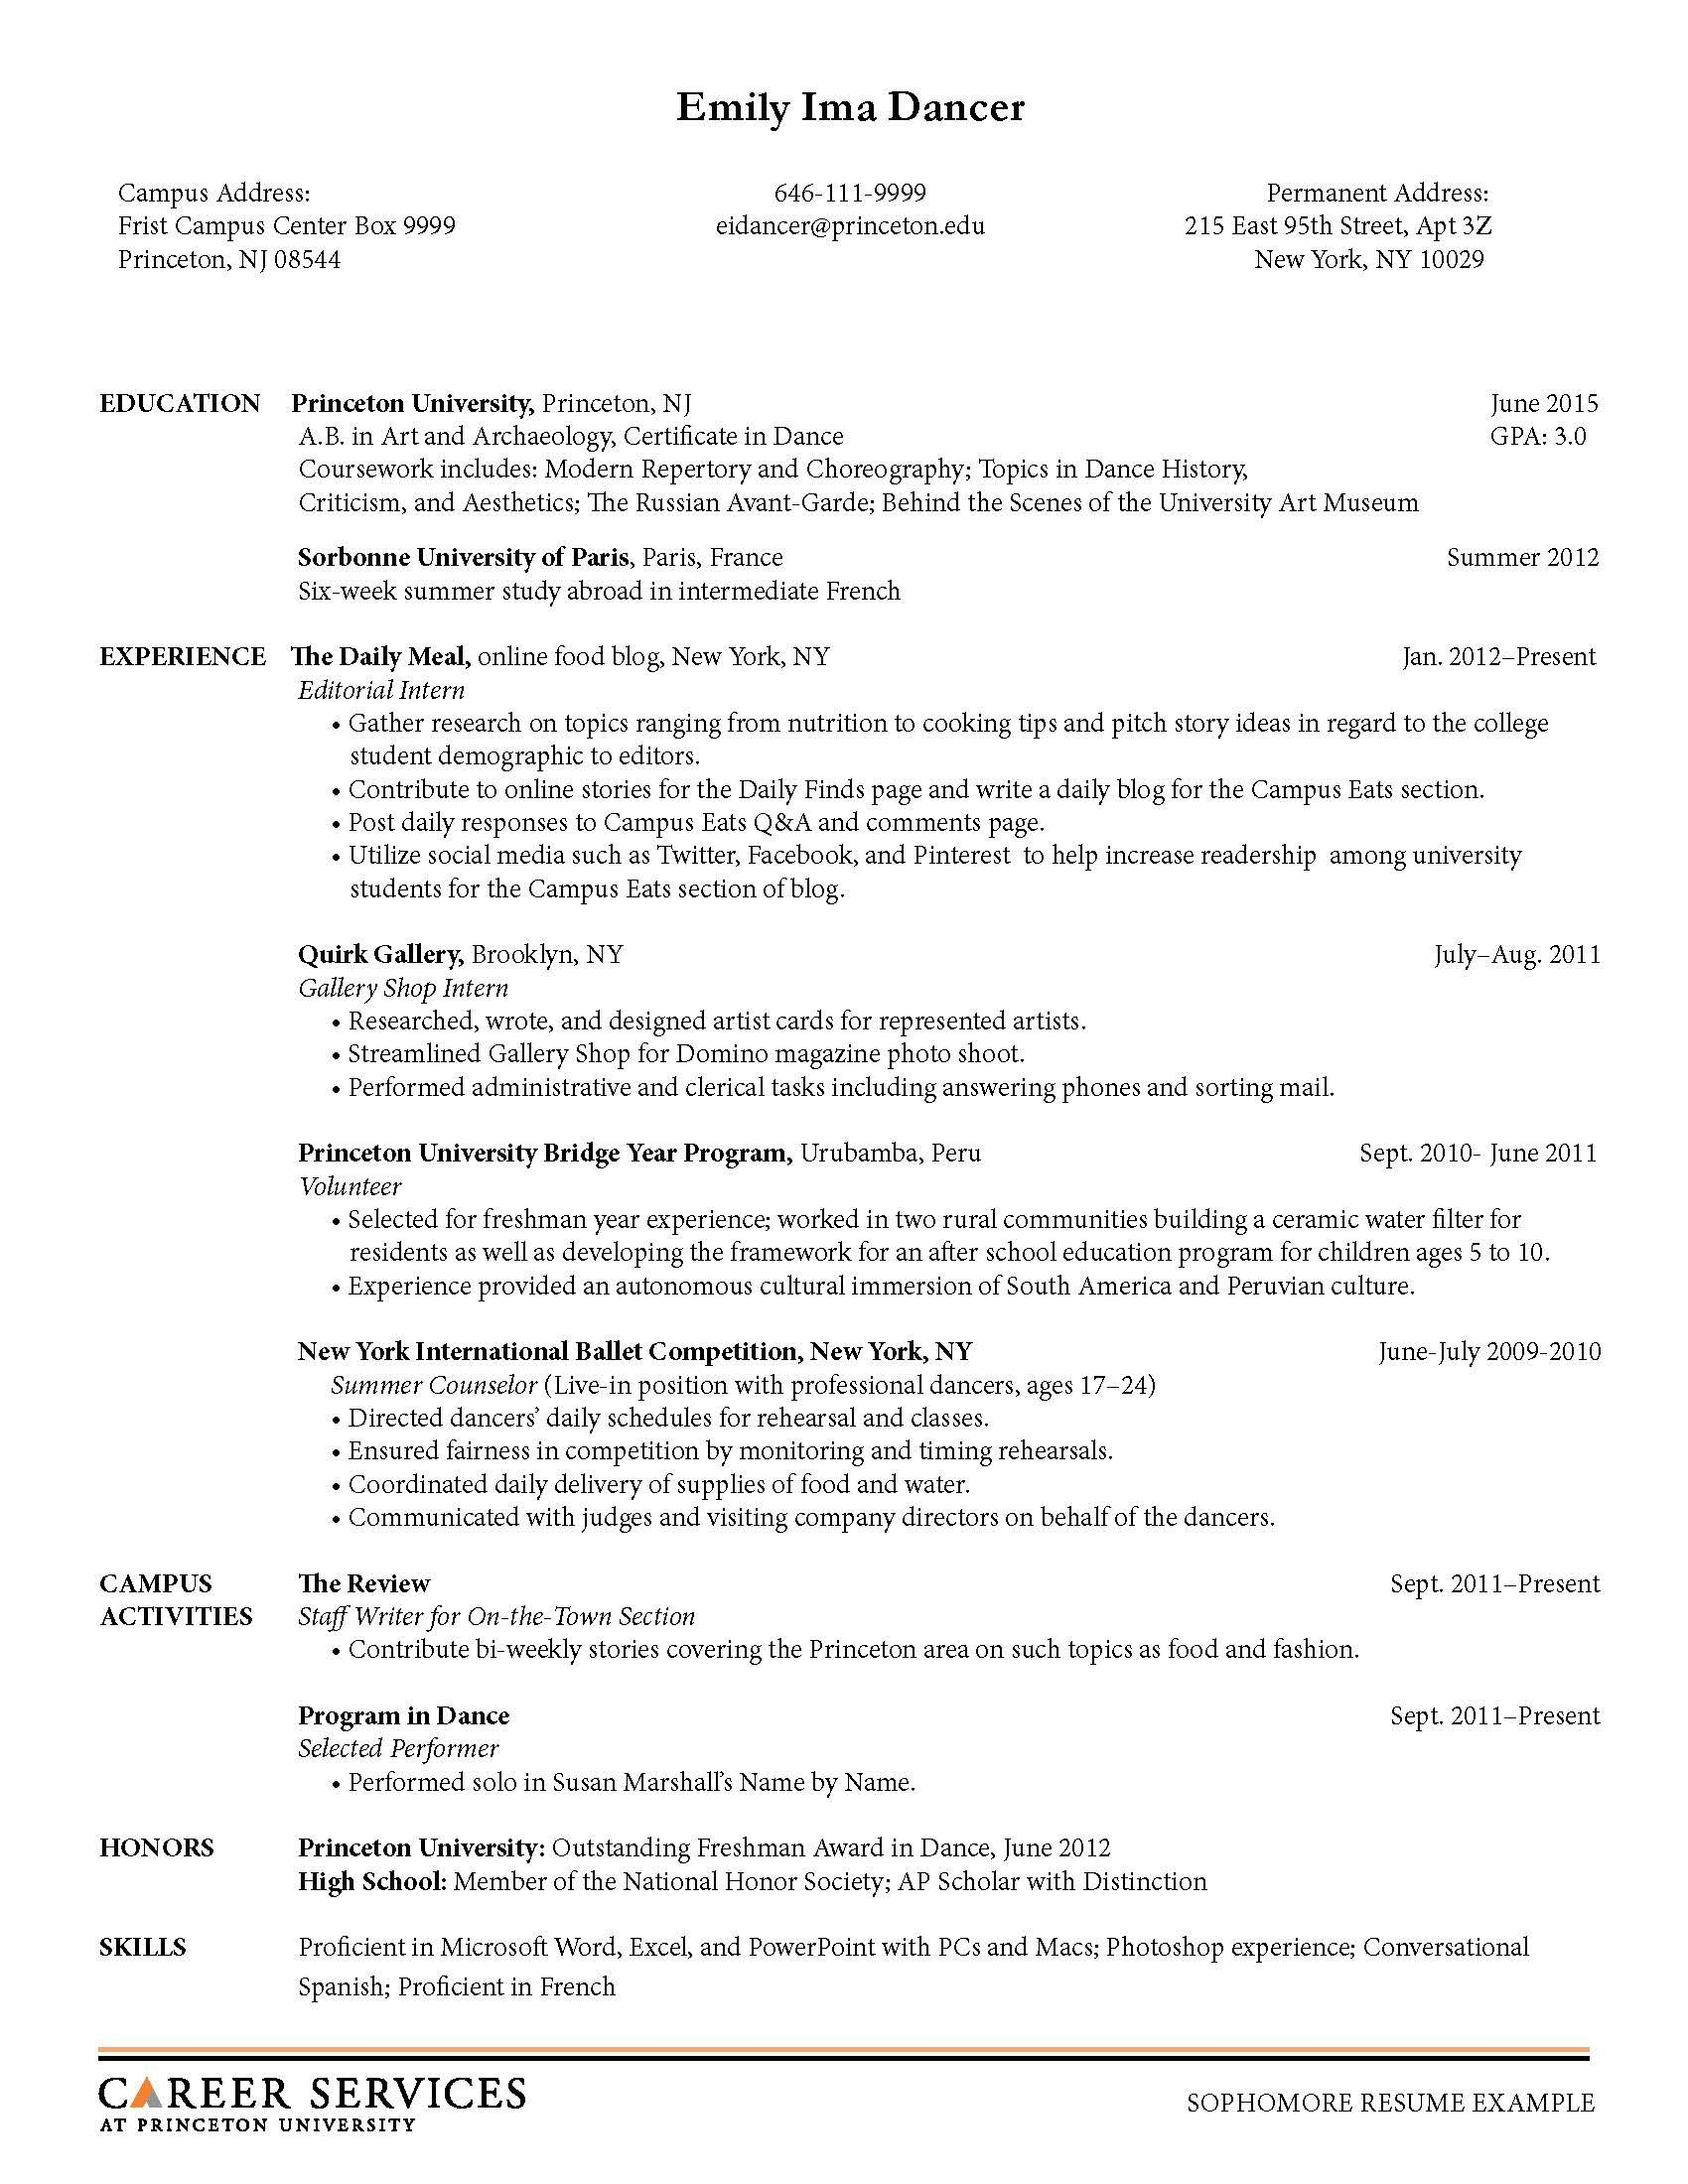 Opposenewapstandardsus  Unique Sample Resume Resume And Career On Pinterest With Magnificent Maintenance Job Resume Besides Computer Science Resume Examples Furthermore Quality Control Inspector Resume With Easy On The Eye Resume Submission Also Resume Sample Skills In Addition Video Producer Resume And High School Student Resume Example As Well As Promotion On Resume Additionally Senior Java Developer Resume From Pinterestcom With Opposenewapstandardsus  Magnificent Sample Resume Resume And Career On Pinterest With Easy On The Eye Maintenance Job Resume Besides Computer Science Resume Examples Furthermore Quality Control Inspector Resume And Unique Resume Submission Also Resume Sample Skills In Addition Video Producer Resume From Pinterestcom